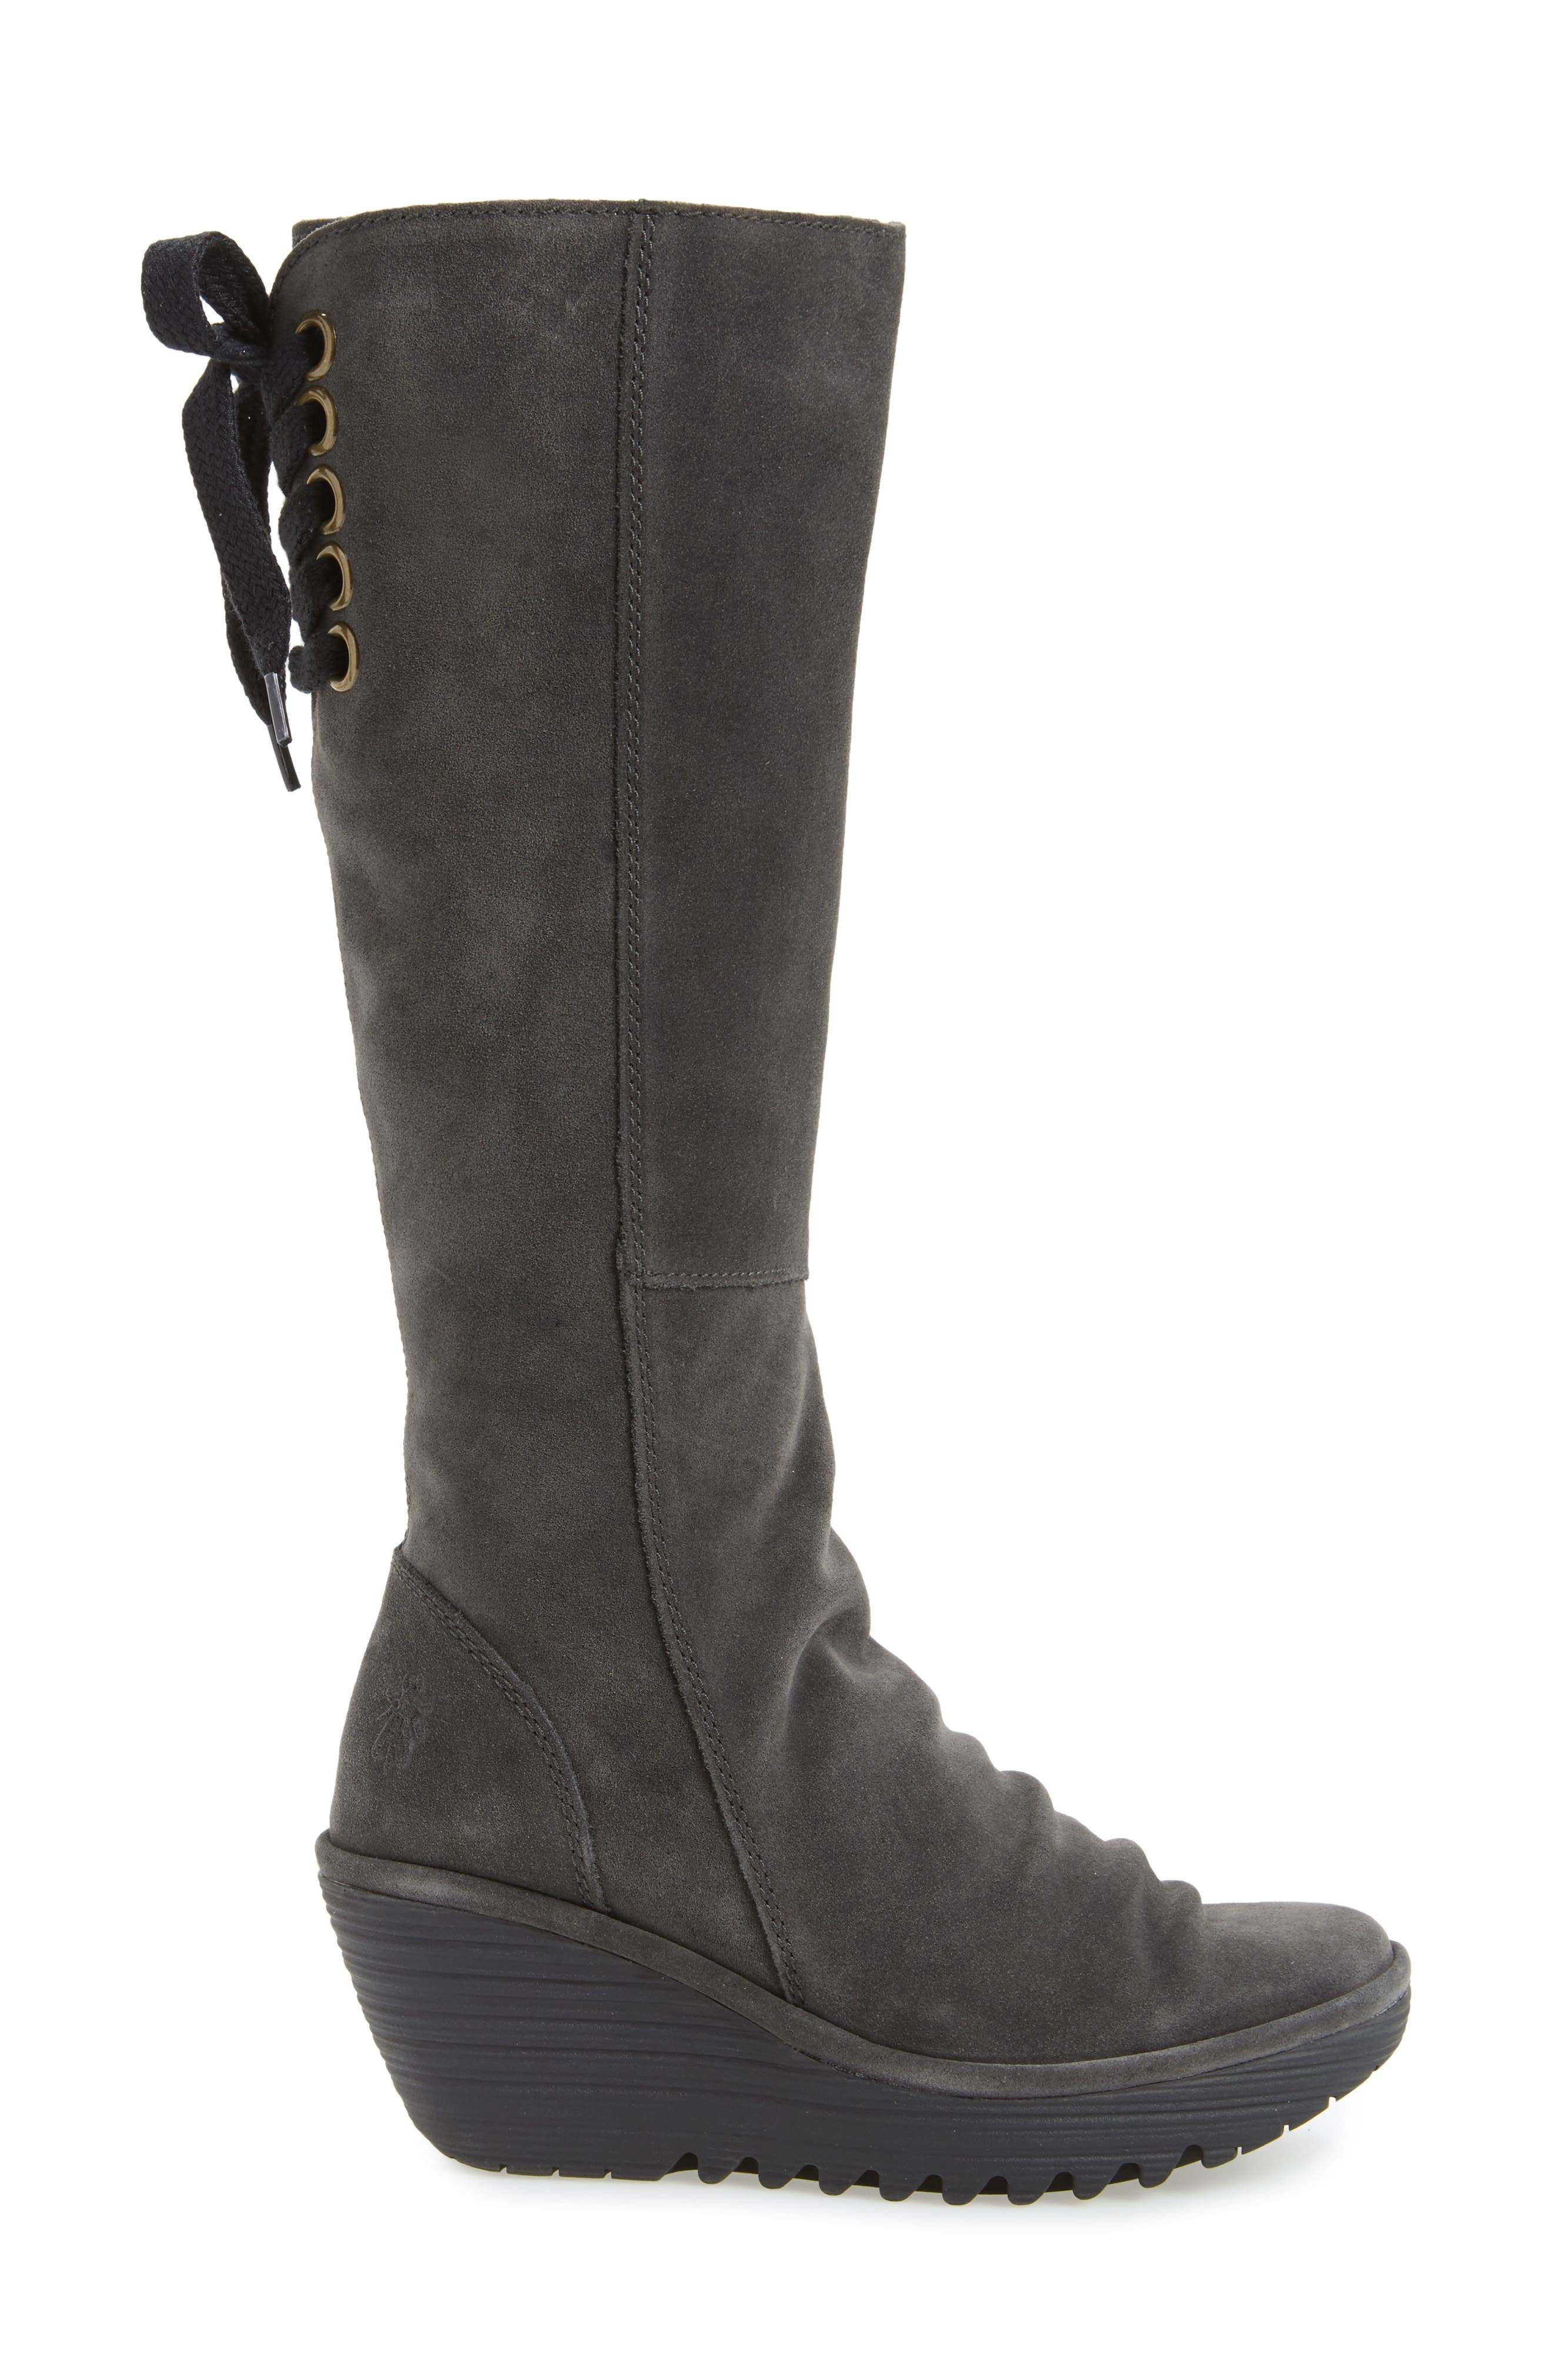 'Yust' Knee High Platform Wedge Boot,                             Alternate thumbnail 3, color,                             002